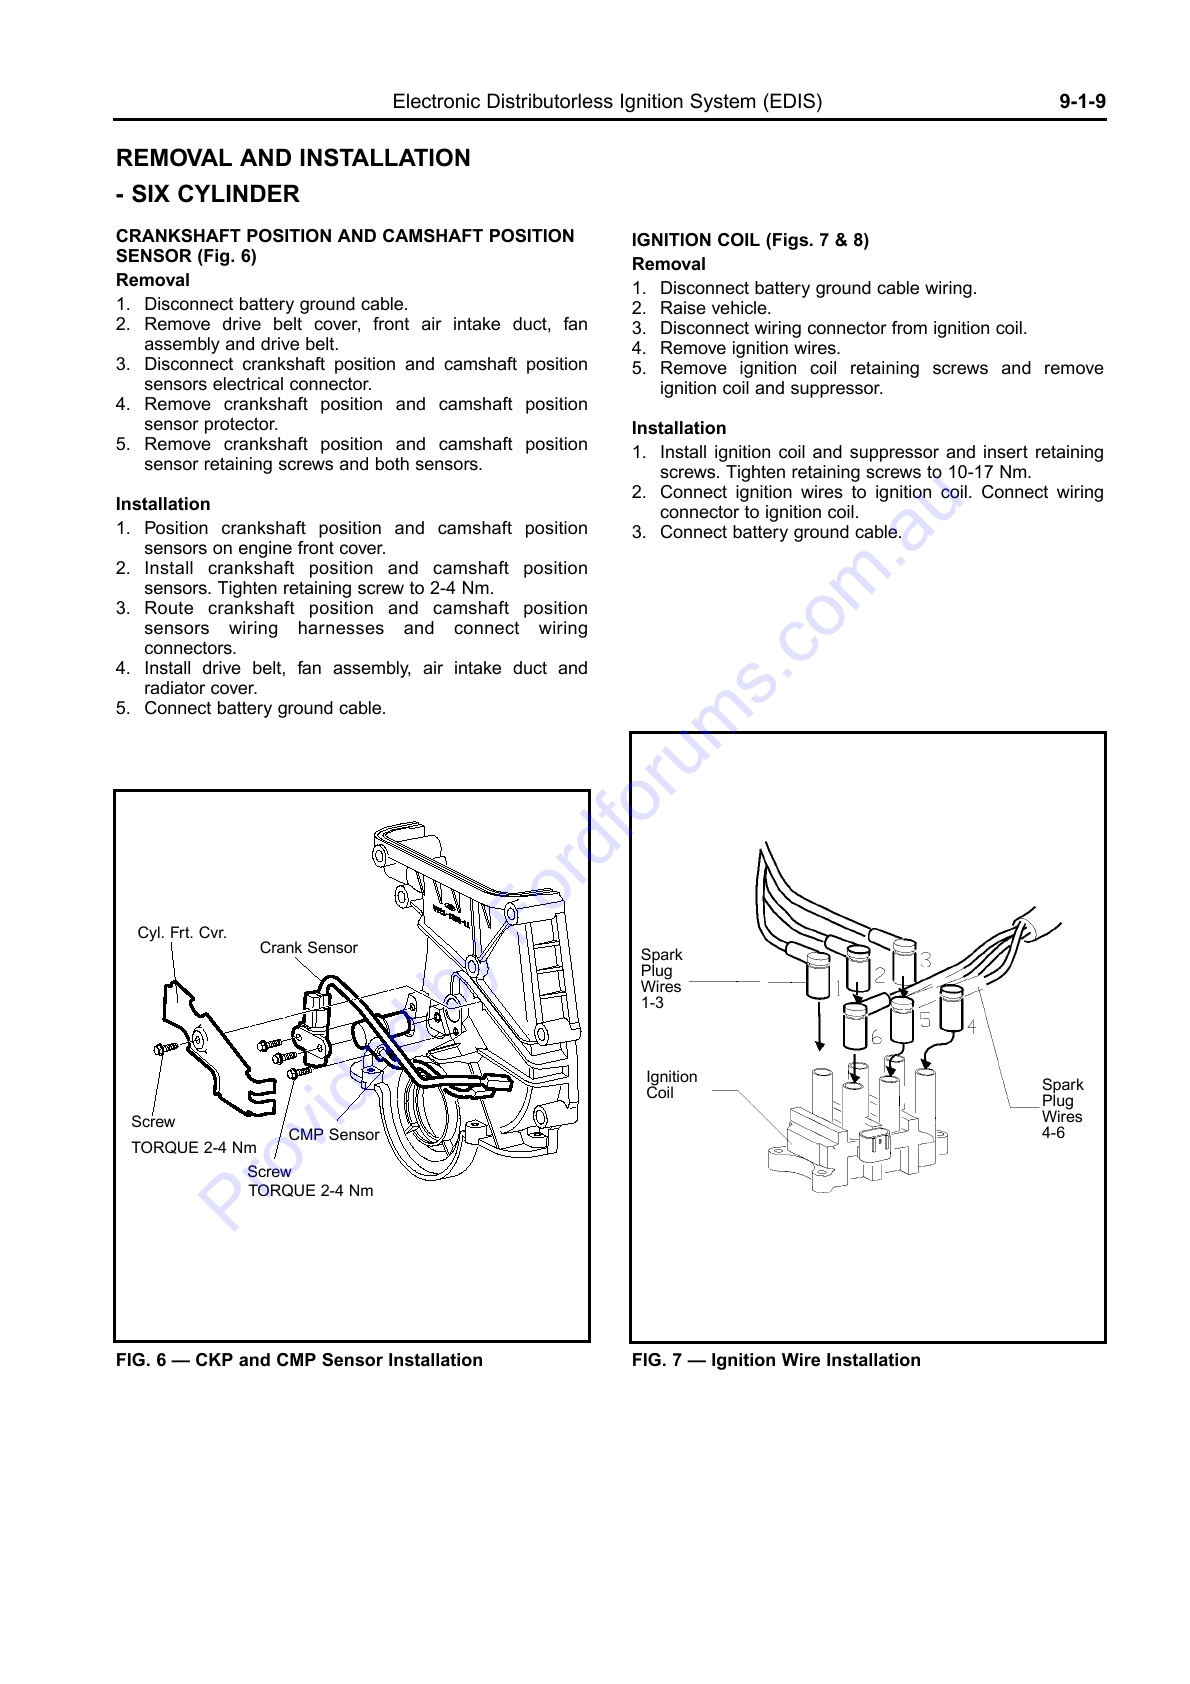 hight resolution of wiring manual diagrams 199r10555 electronic distributorless ignition system edis